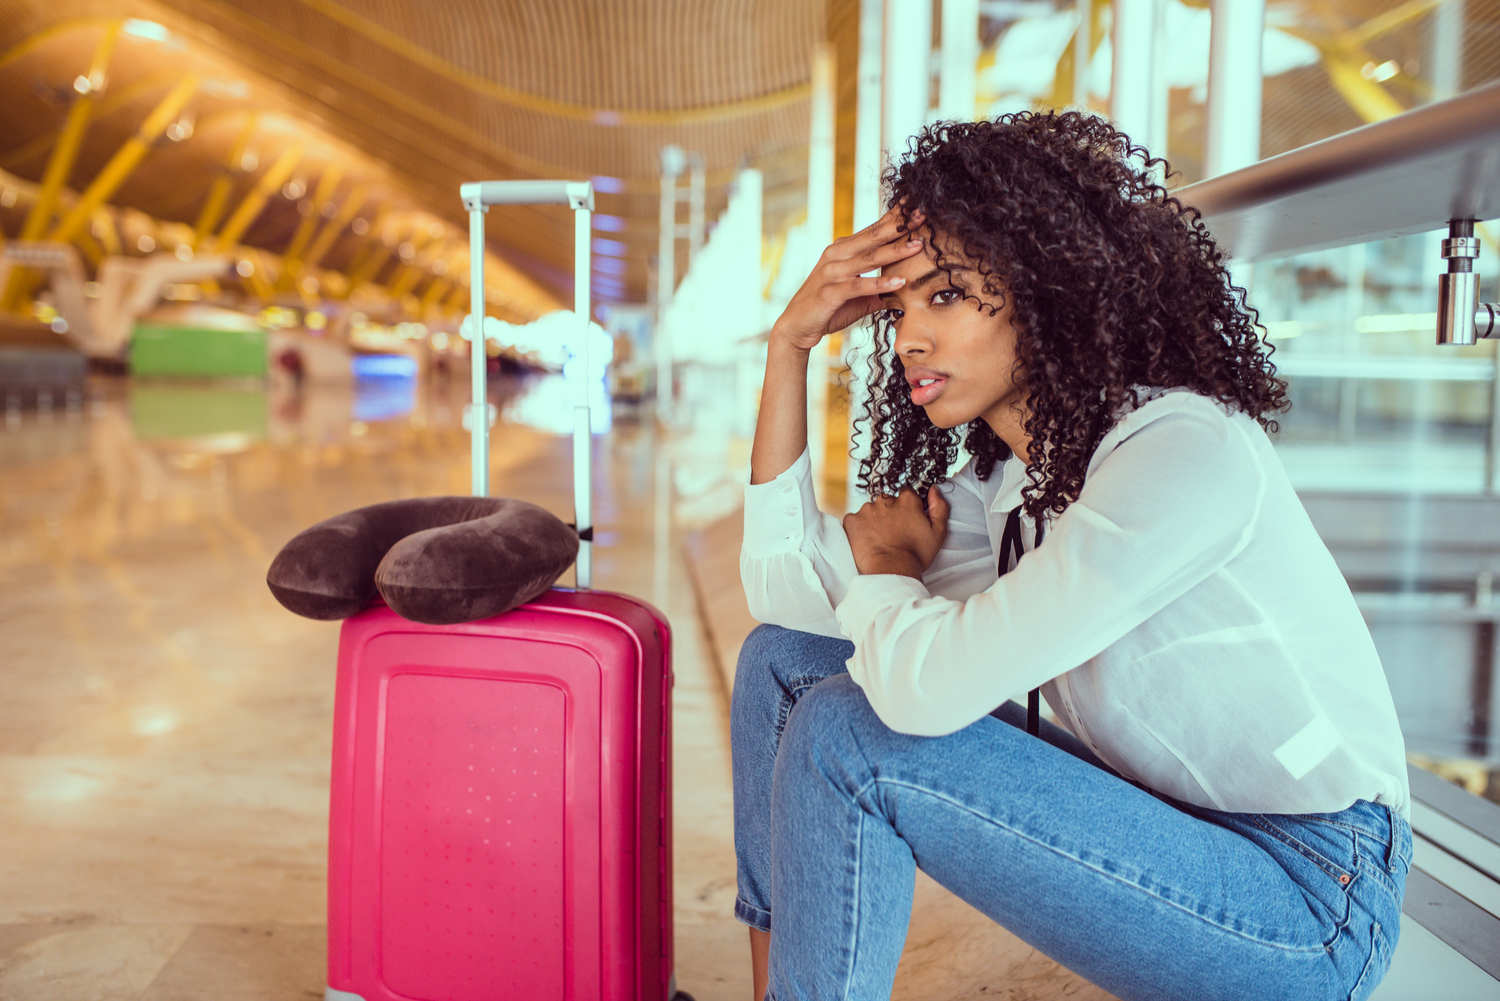 Young brunette woman sitting on the floor at an airport next to her suitcase looking stressed and unhappy